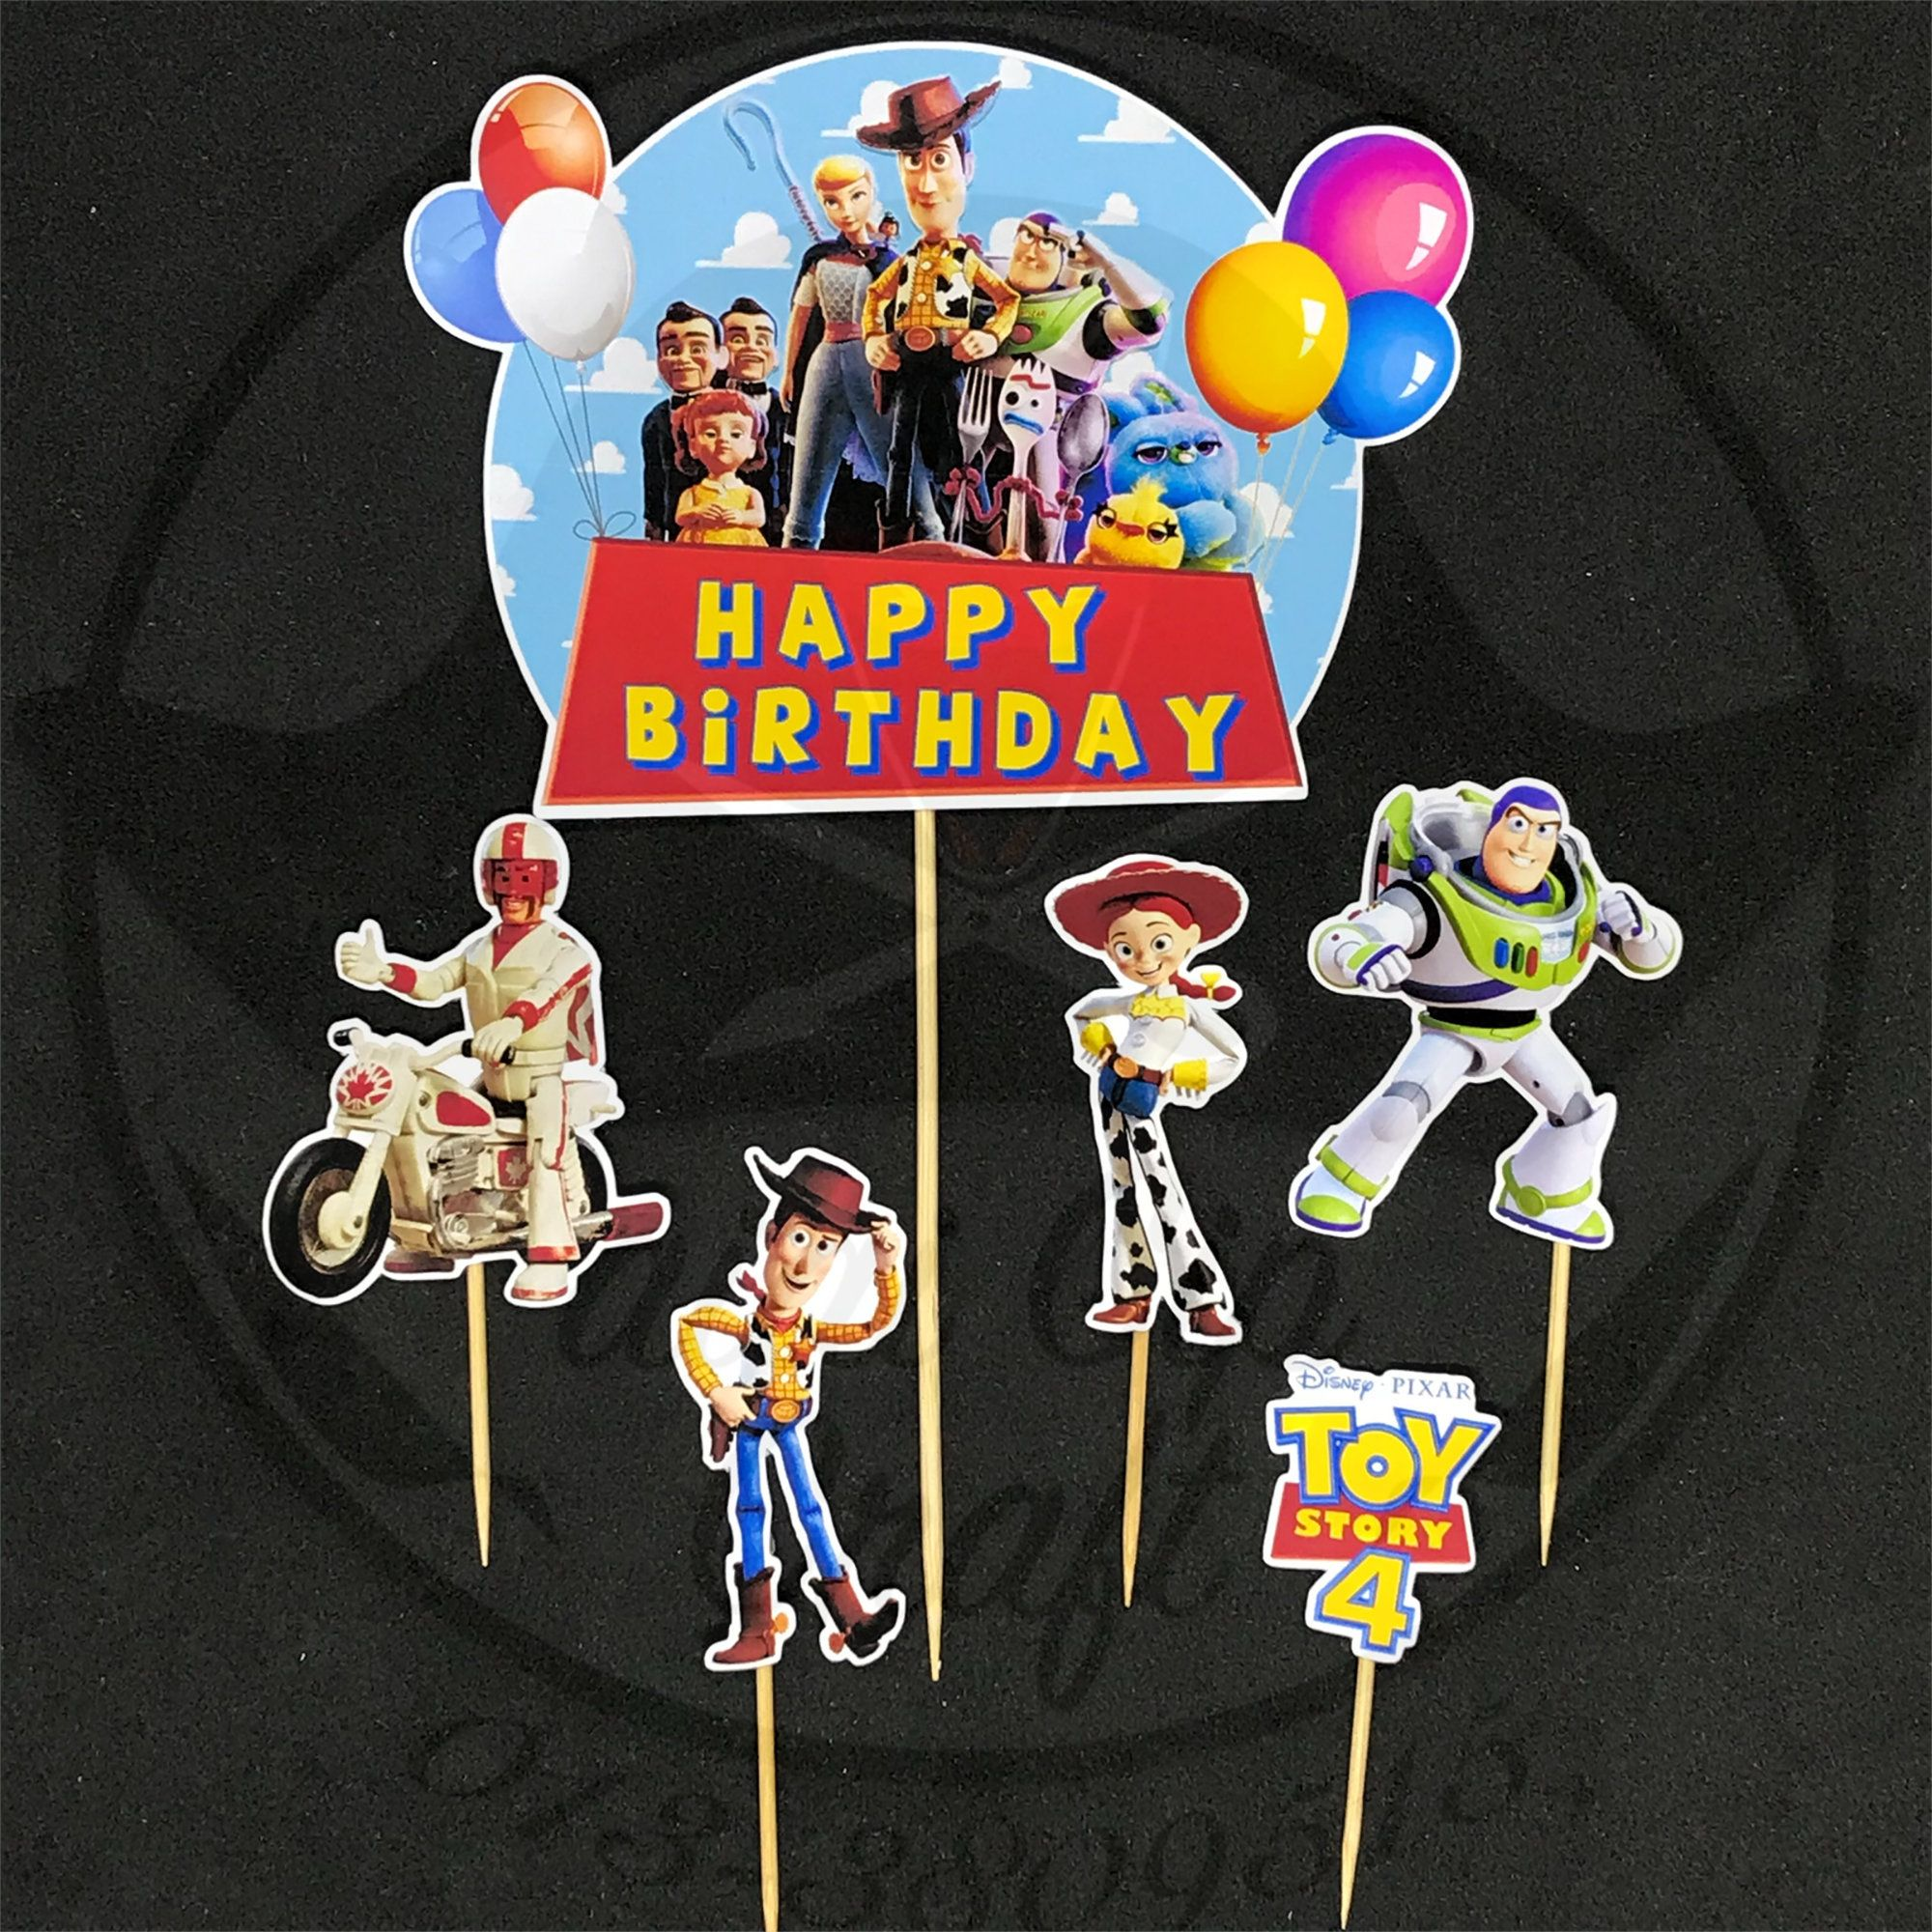 Toy Story 4 Cake Topper Template Cake Toppers Birthday